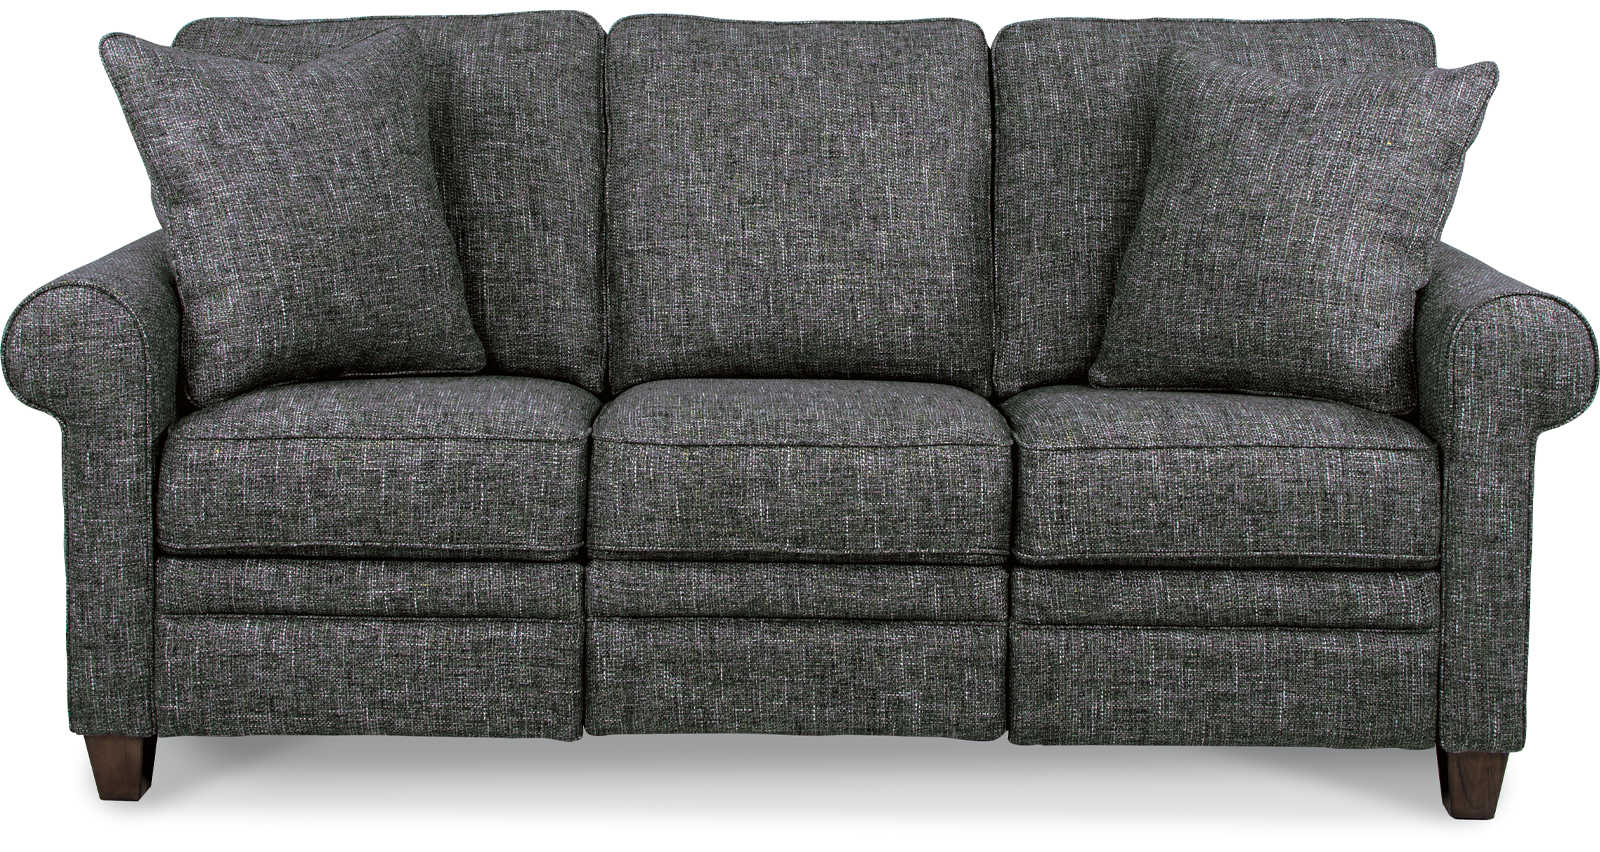 Makenna duo® Reclining Sofa front view